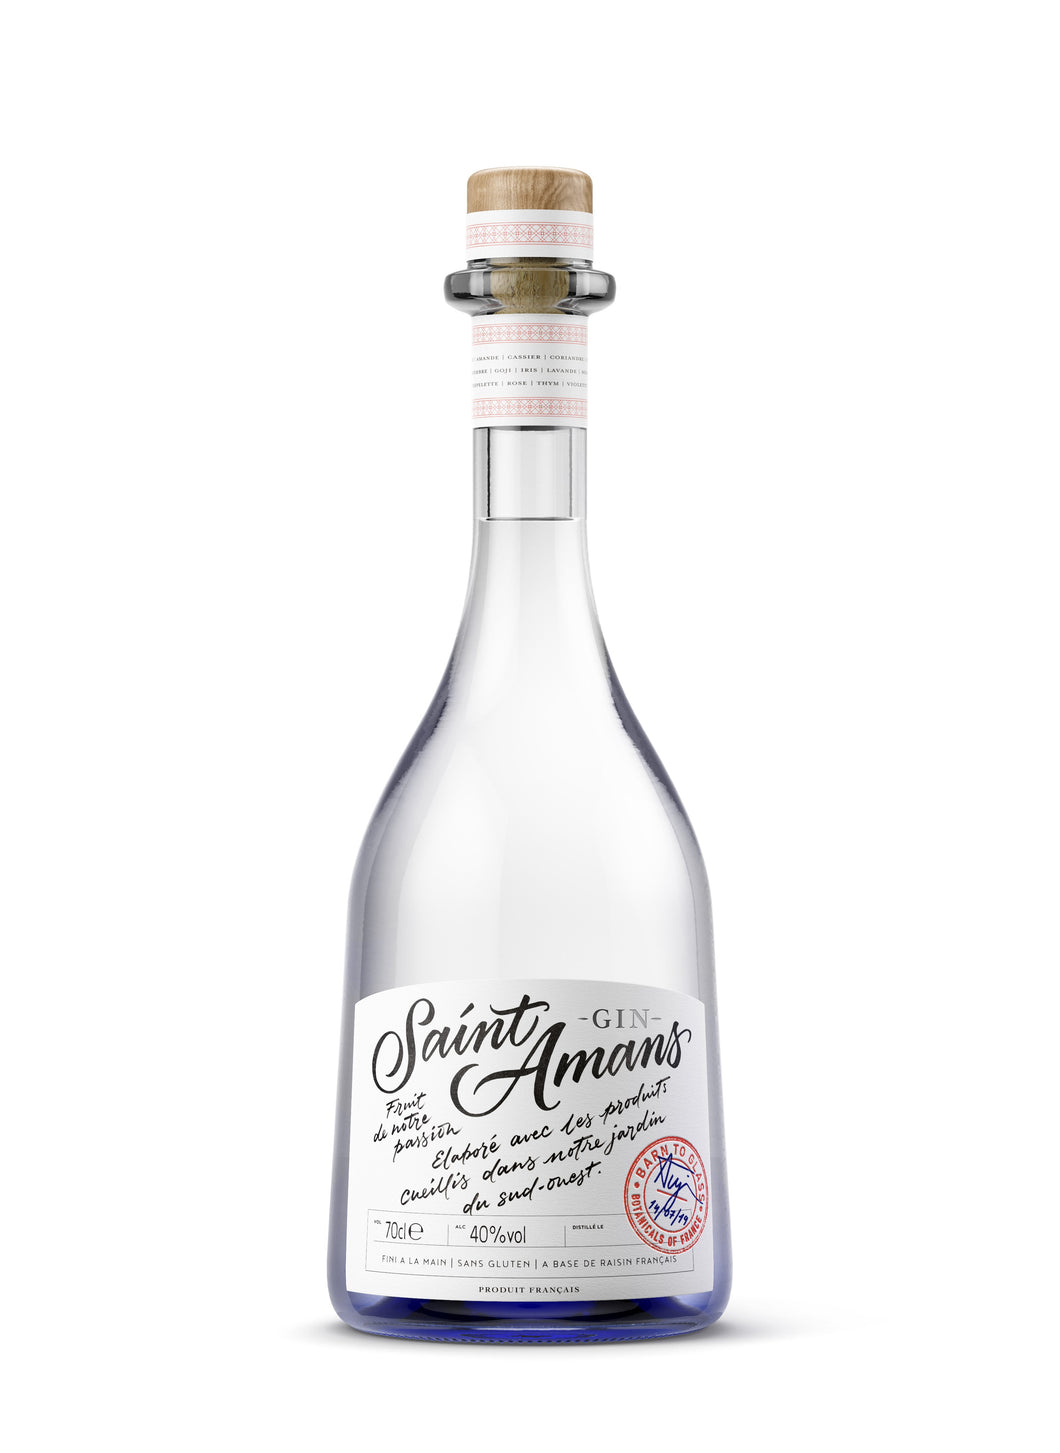 Bottle of Saint Amans Gin Original,  a French, award-winning London Dry gin.